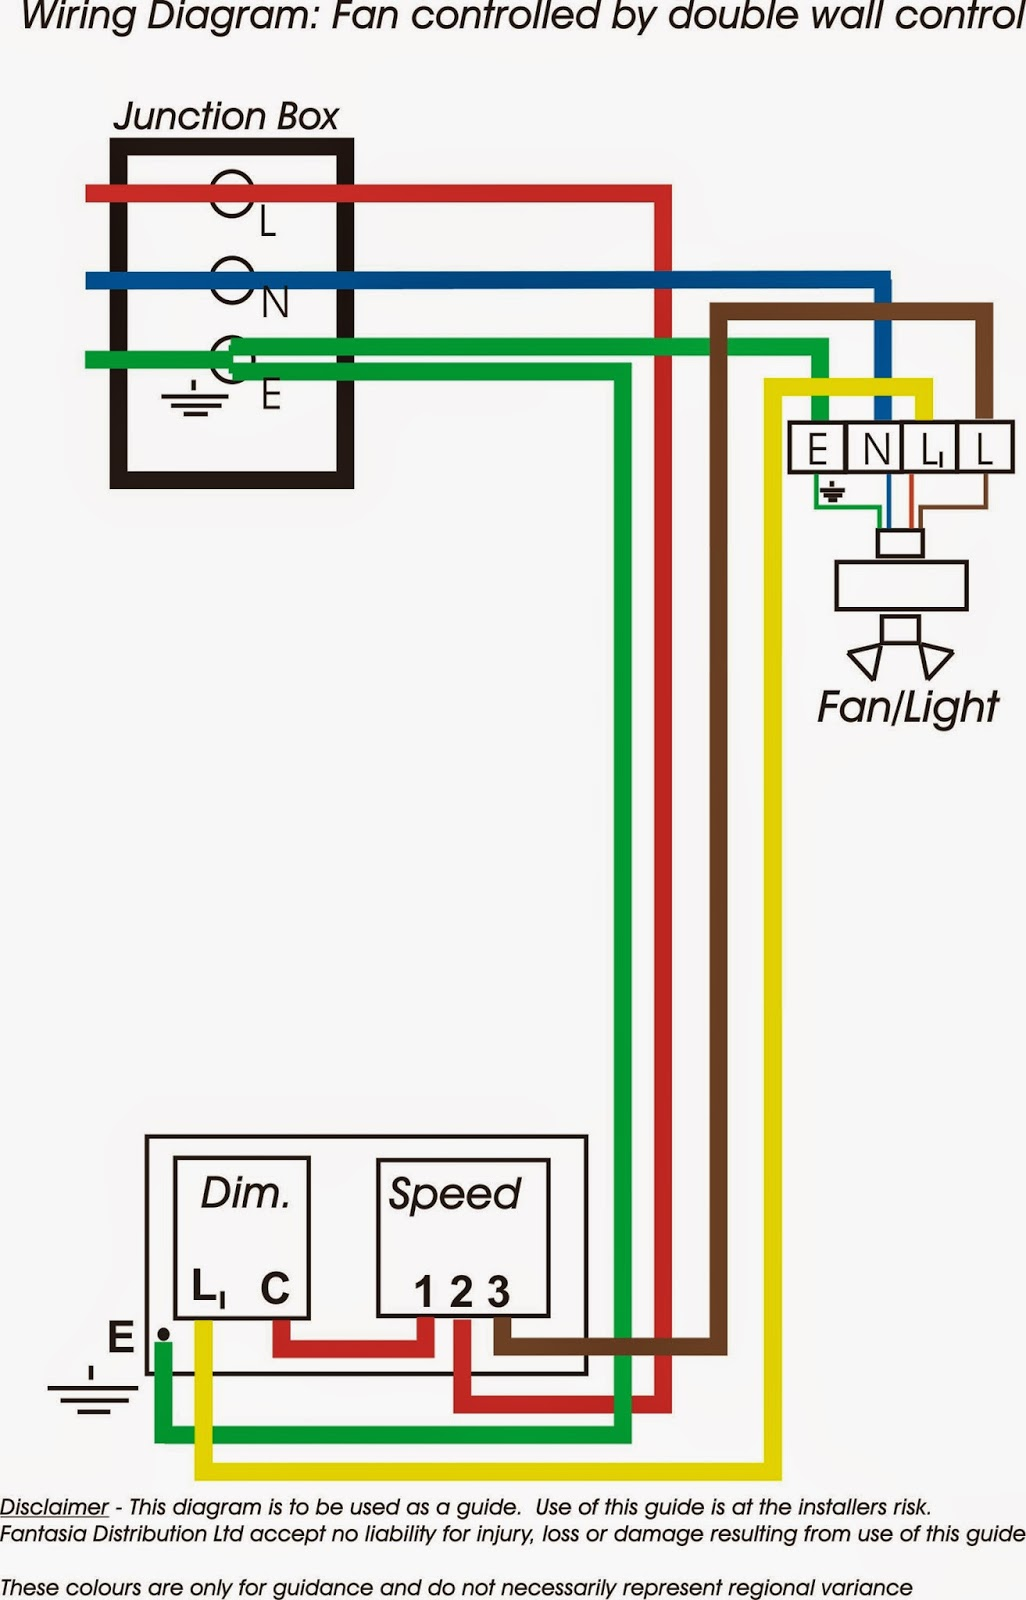 3 wire switch diagram, easy 3 way switch diagram, 3 switch cover, 3 pull switch diagram, 3 switch lighting diagram, 3 speed switch diagram, 4 wire diagram, 3 switch circuit, 3-way electrical connection diagram, 3 light diagram, on 3 function switch wiring diagram